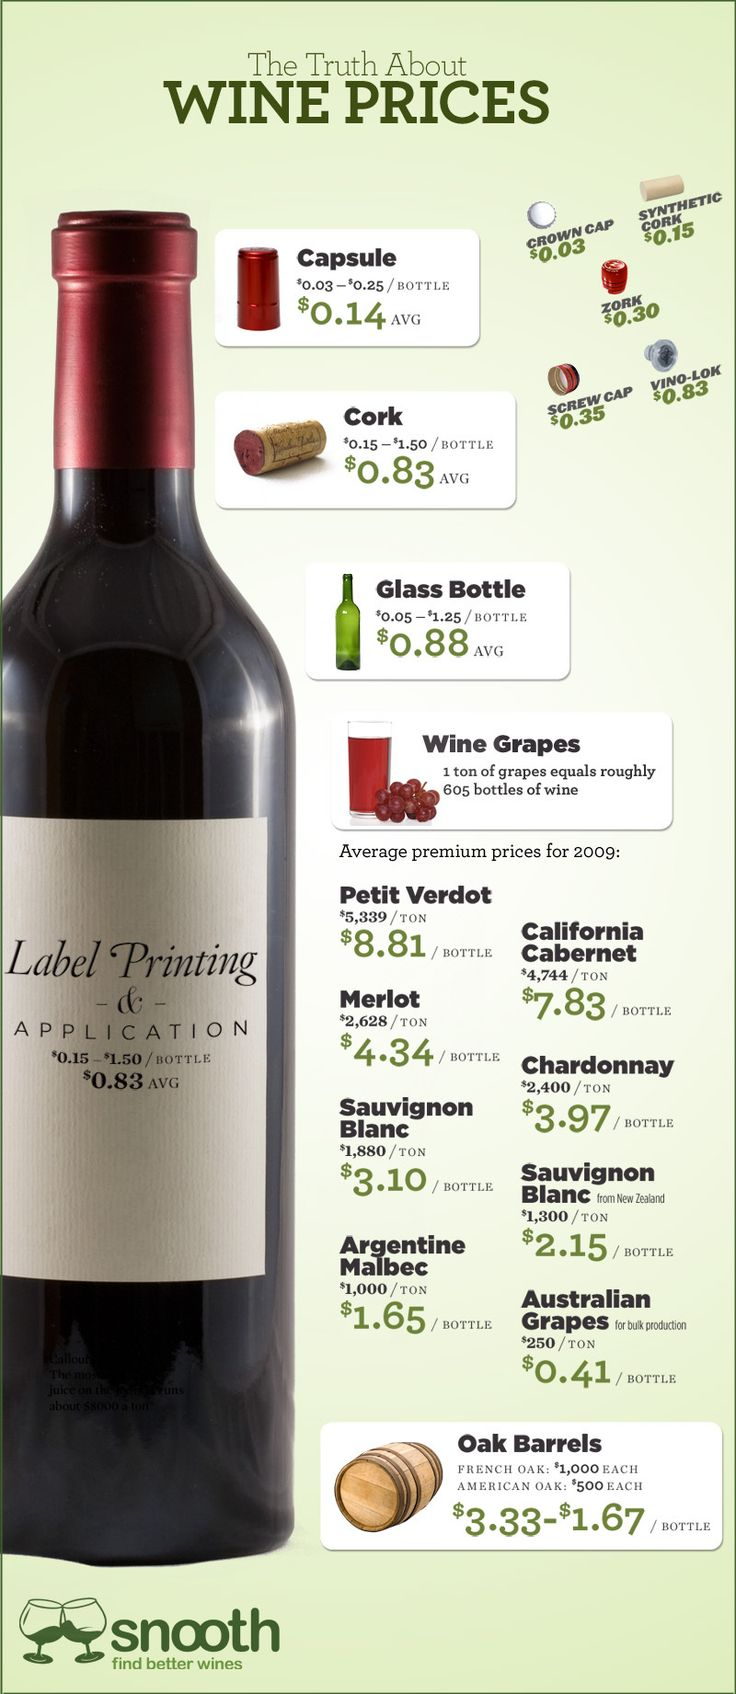 The Truth About Wine Prices [Infographic] via Snooth #infografía